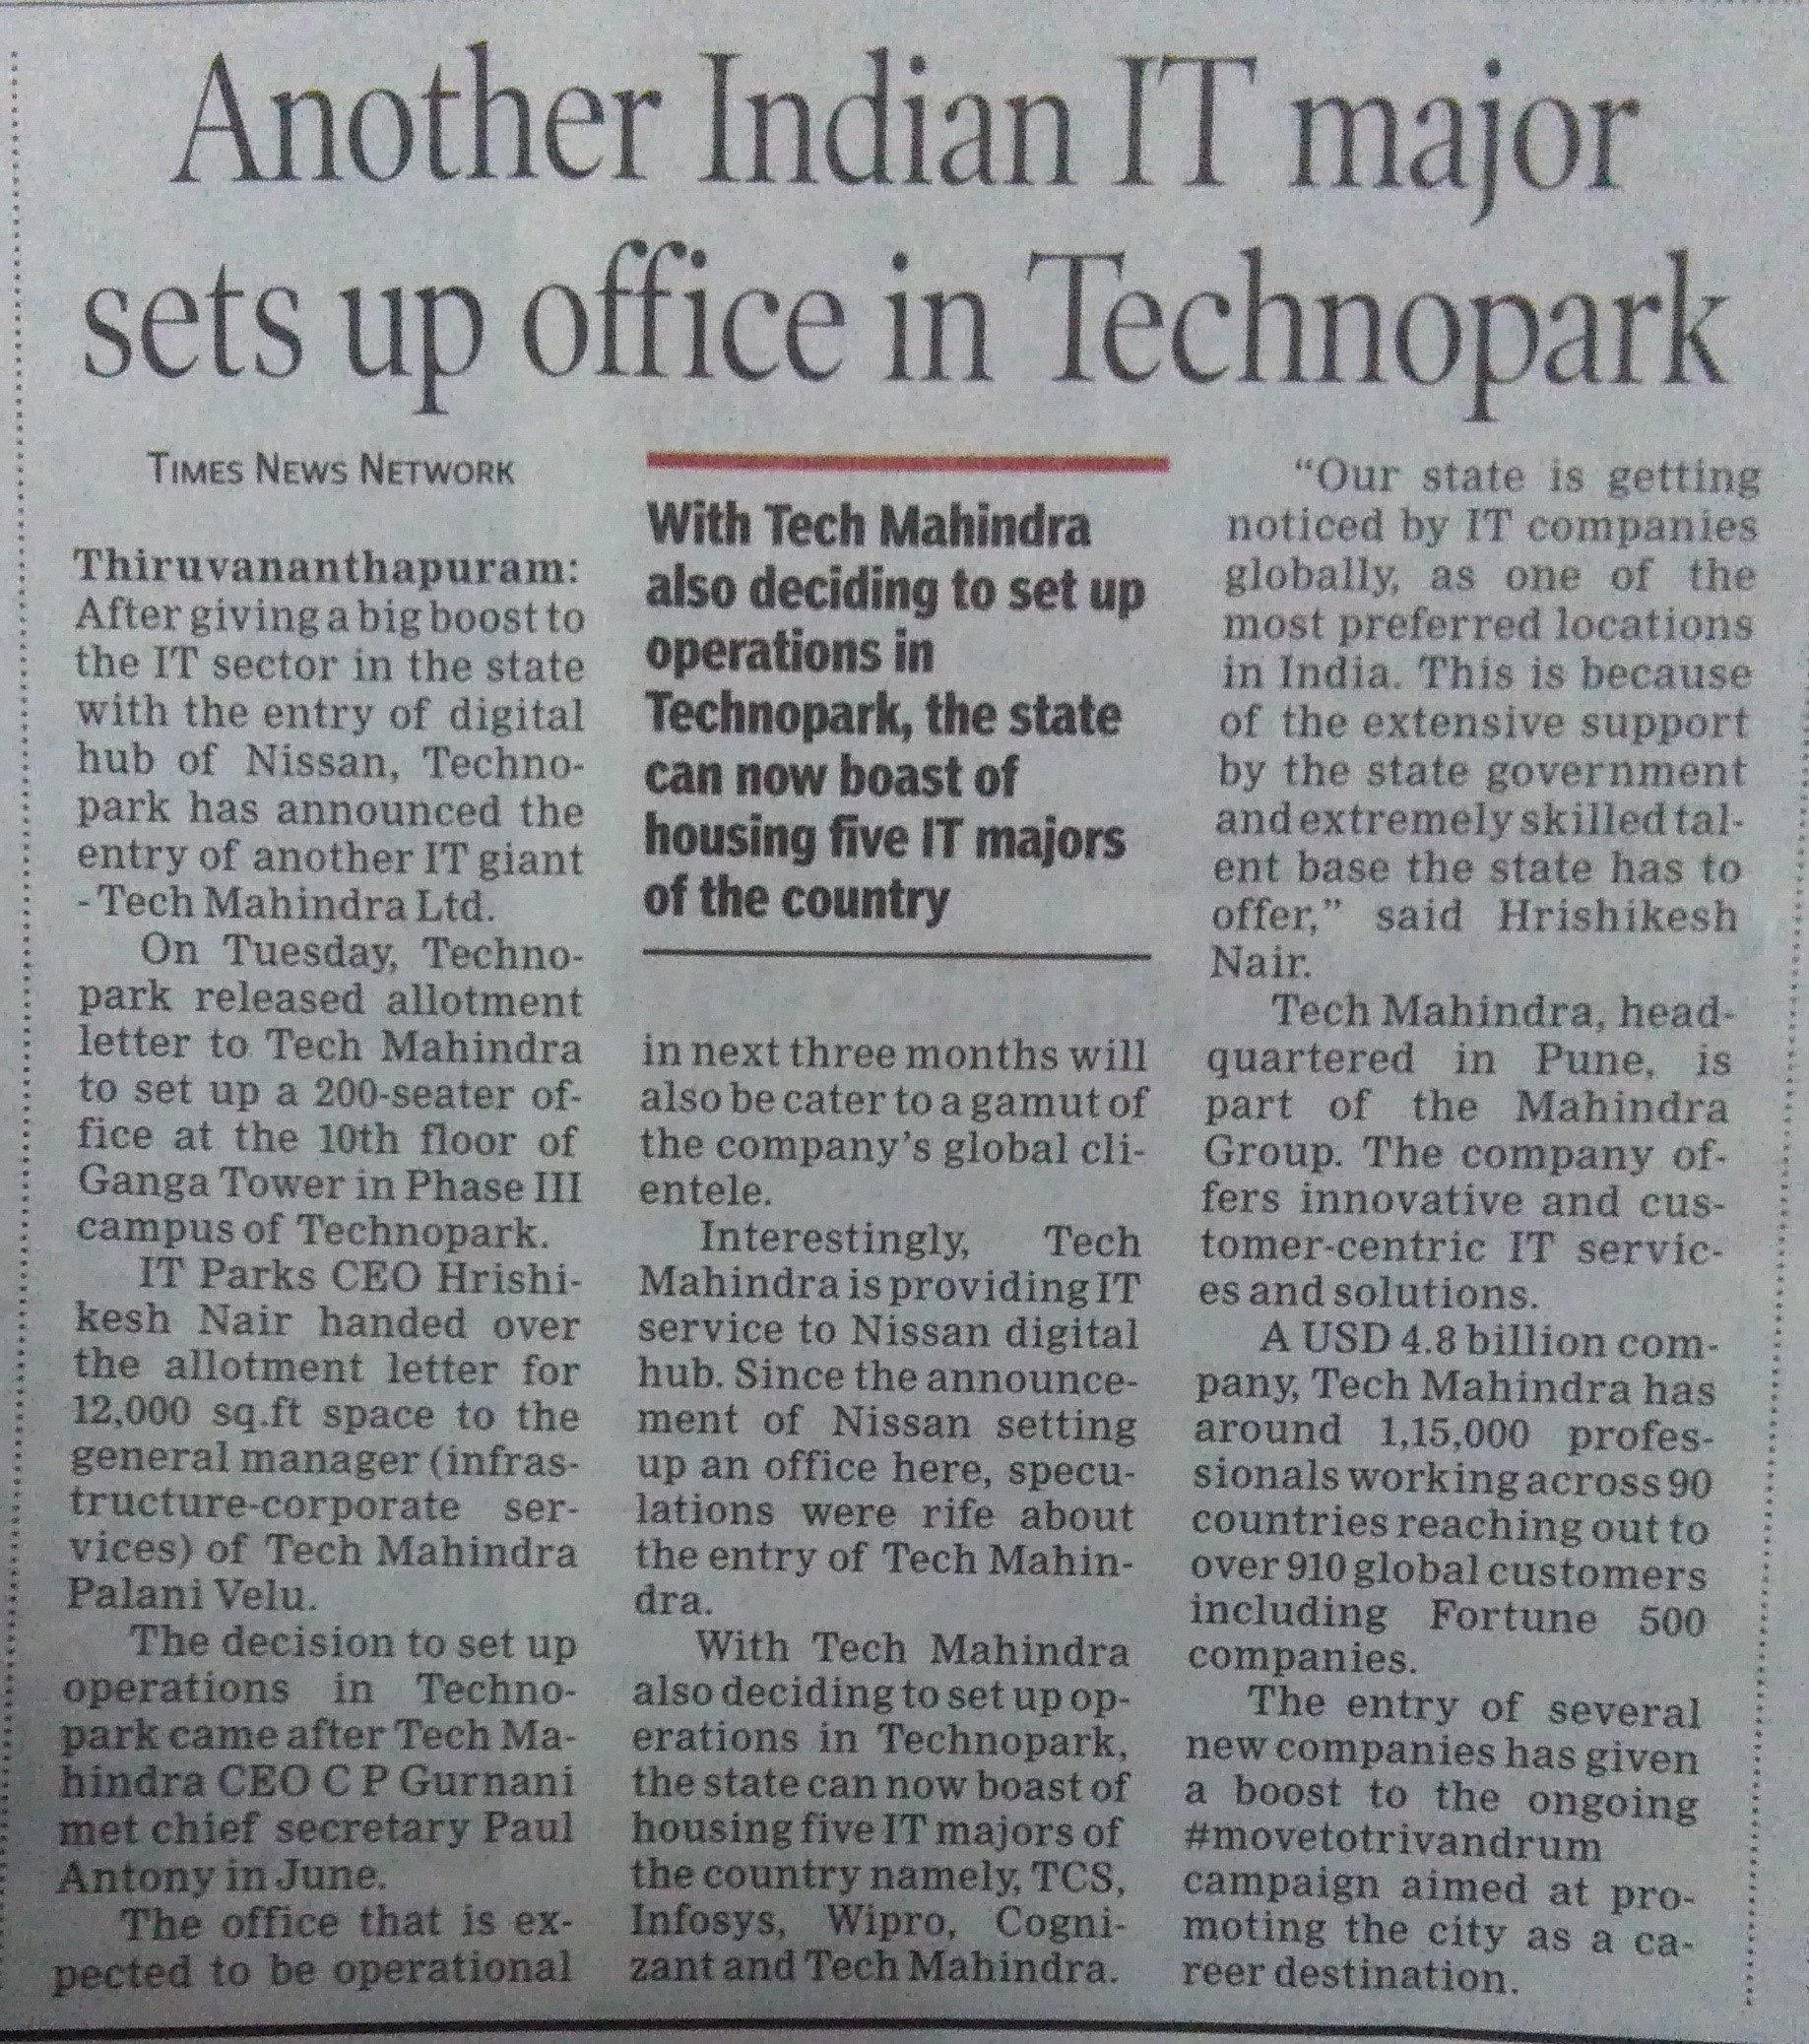 Another Indian IT major sets up office in Technopark